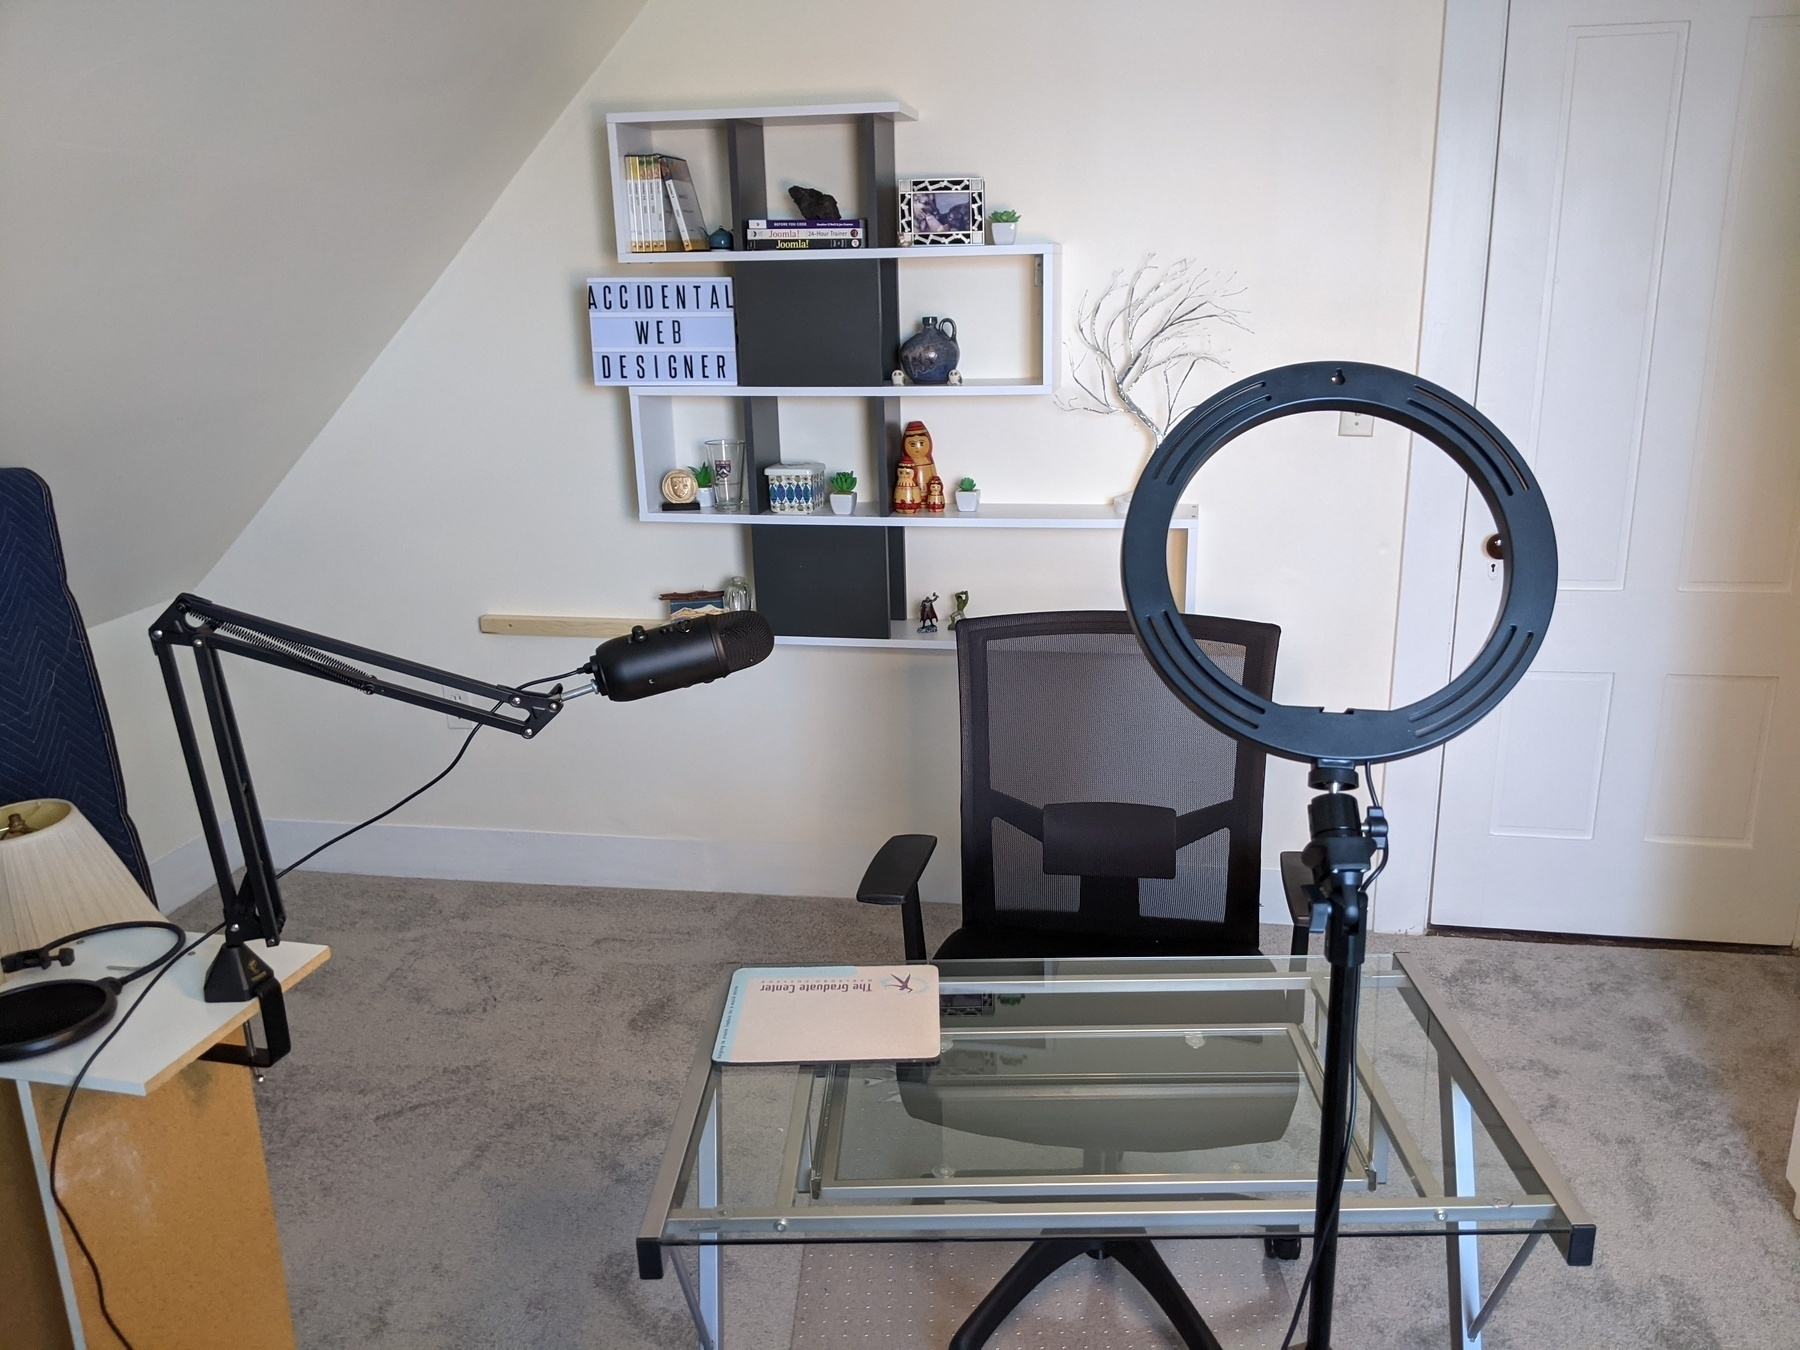 Photo of shelf on the wall, glass desk and chair, microphone on a boom.